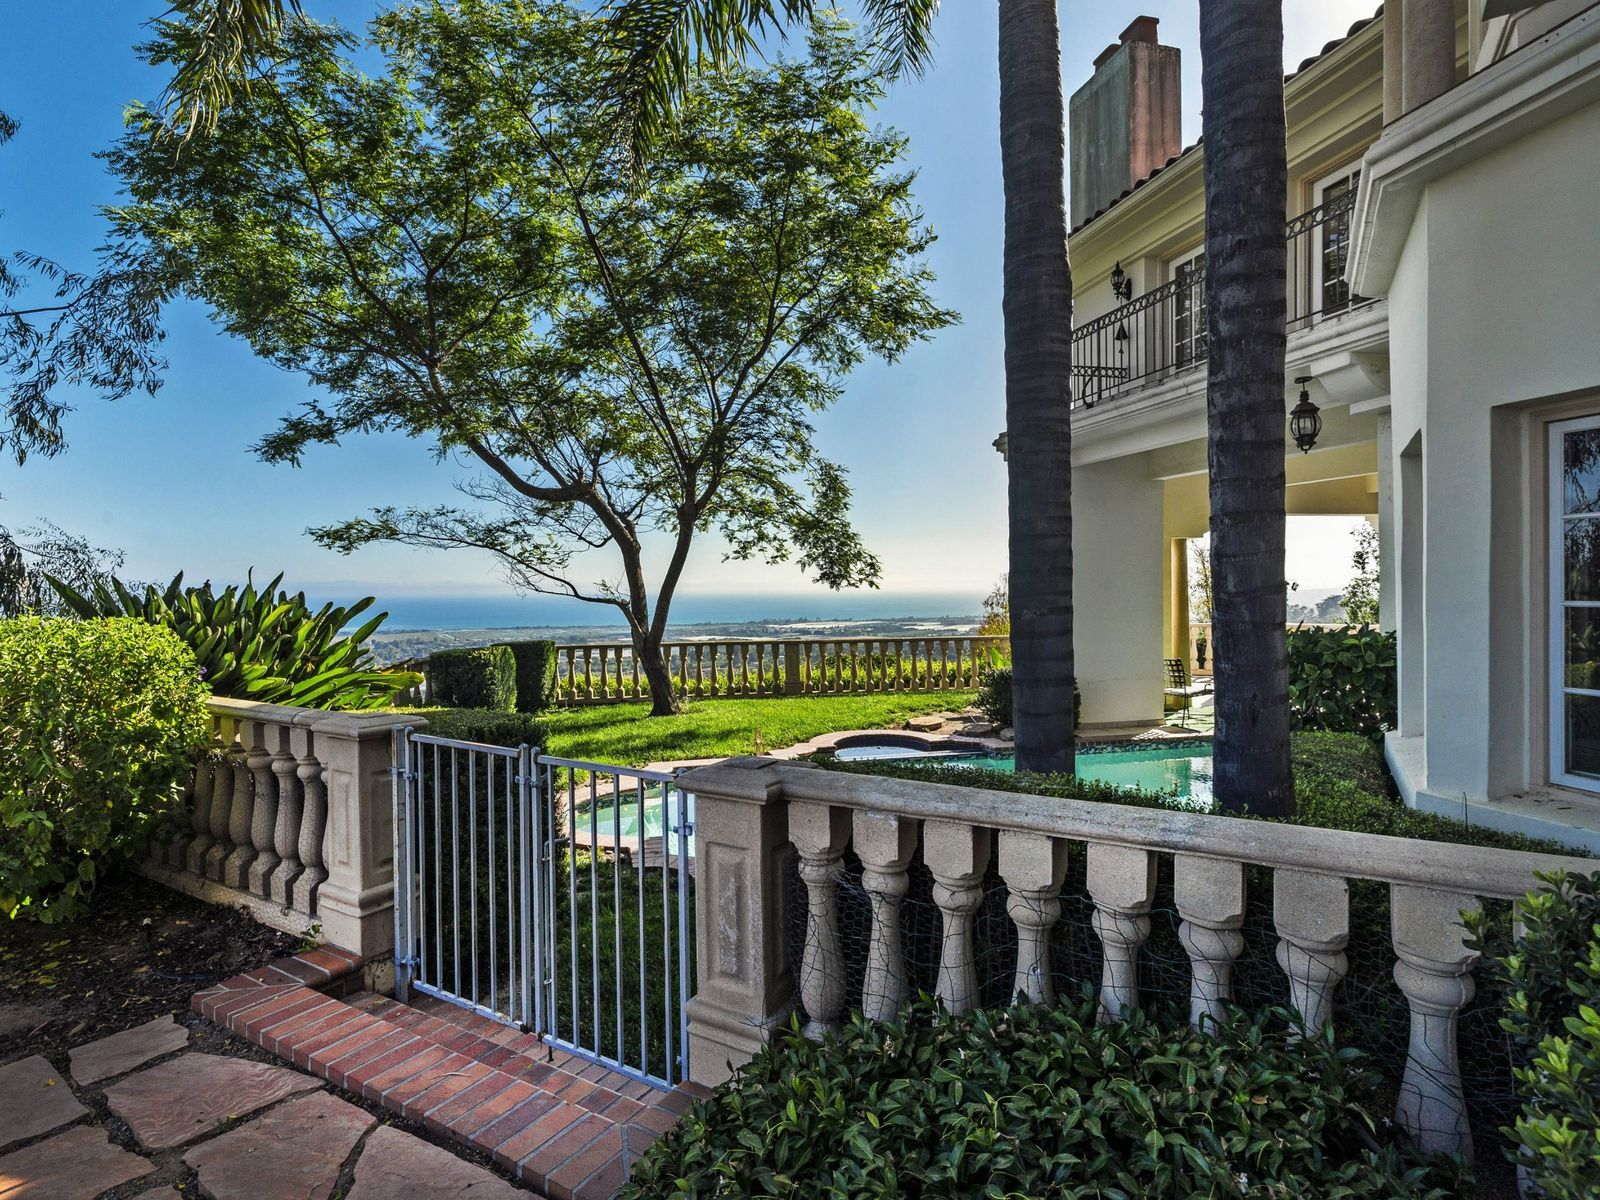 Ocean View Estate on Approx. 23 Acres, Carpinteria CA Single Family Home - Santa Barbara Real Estate